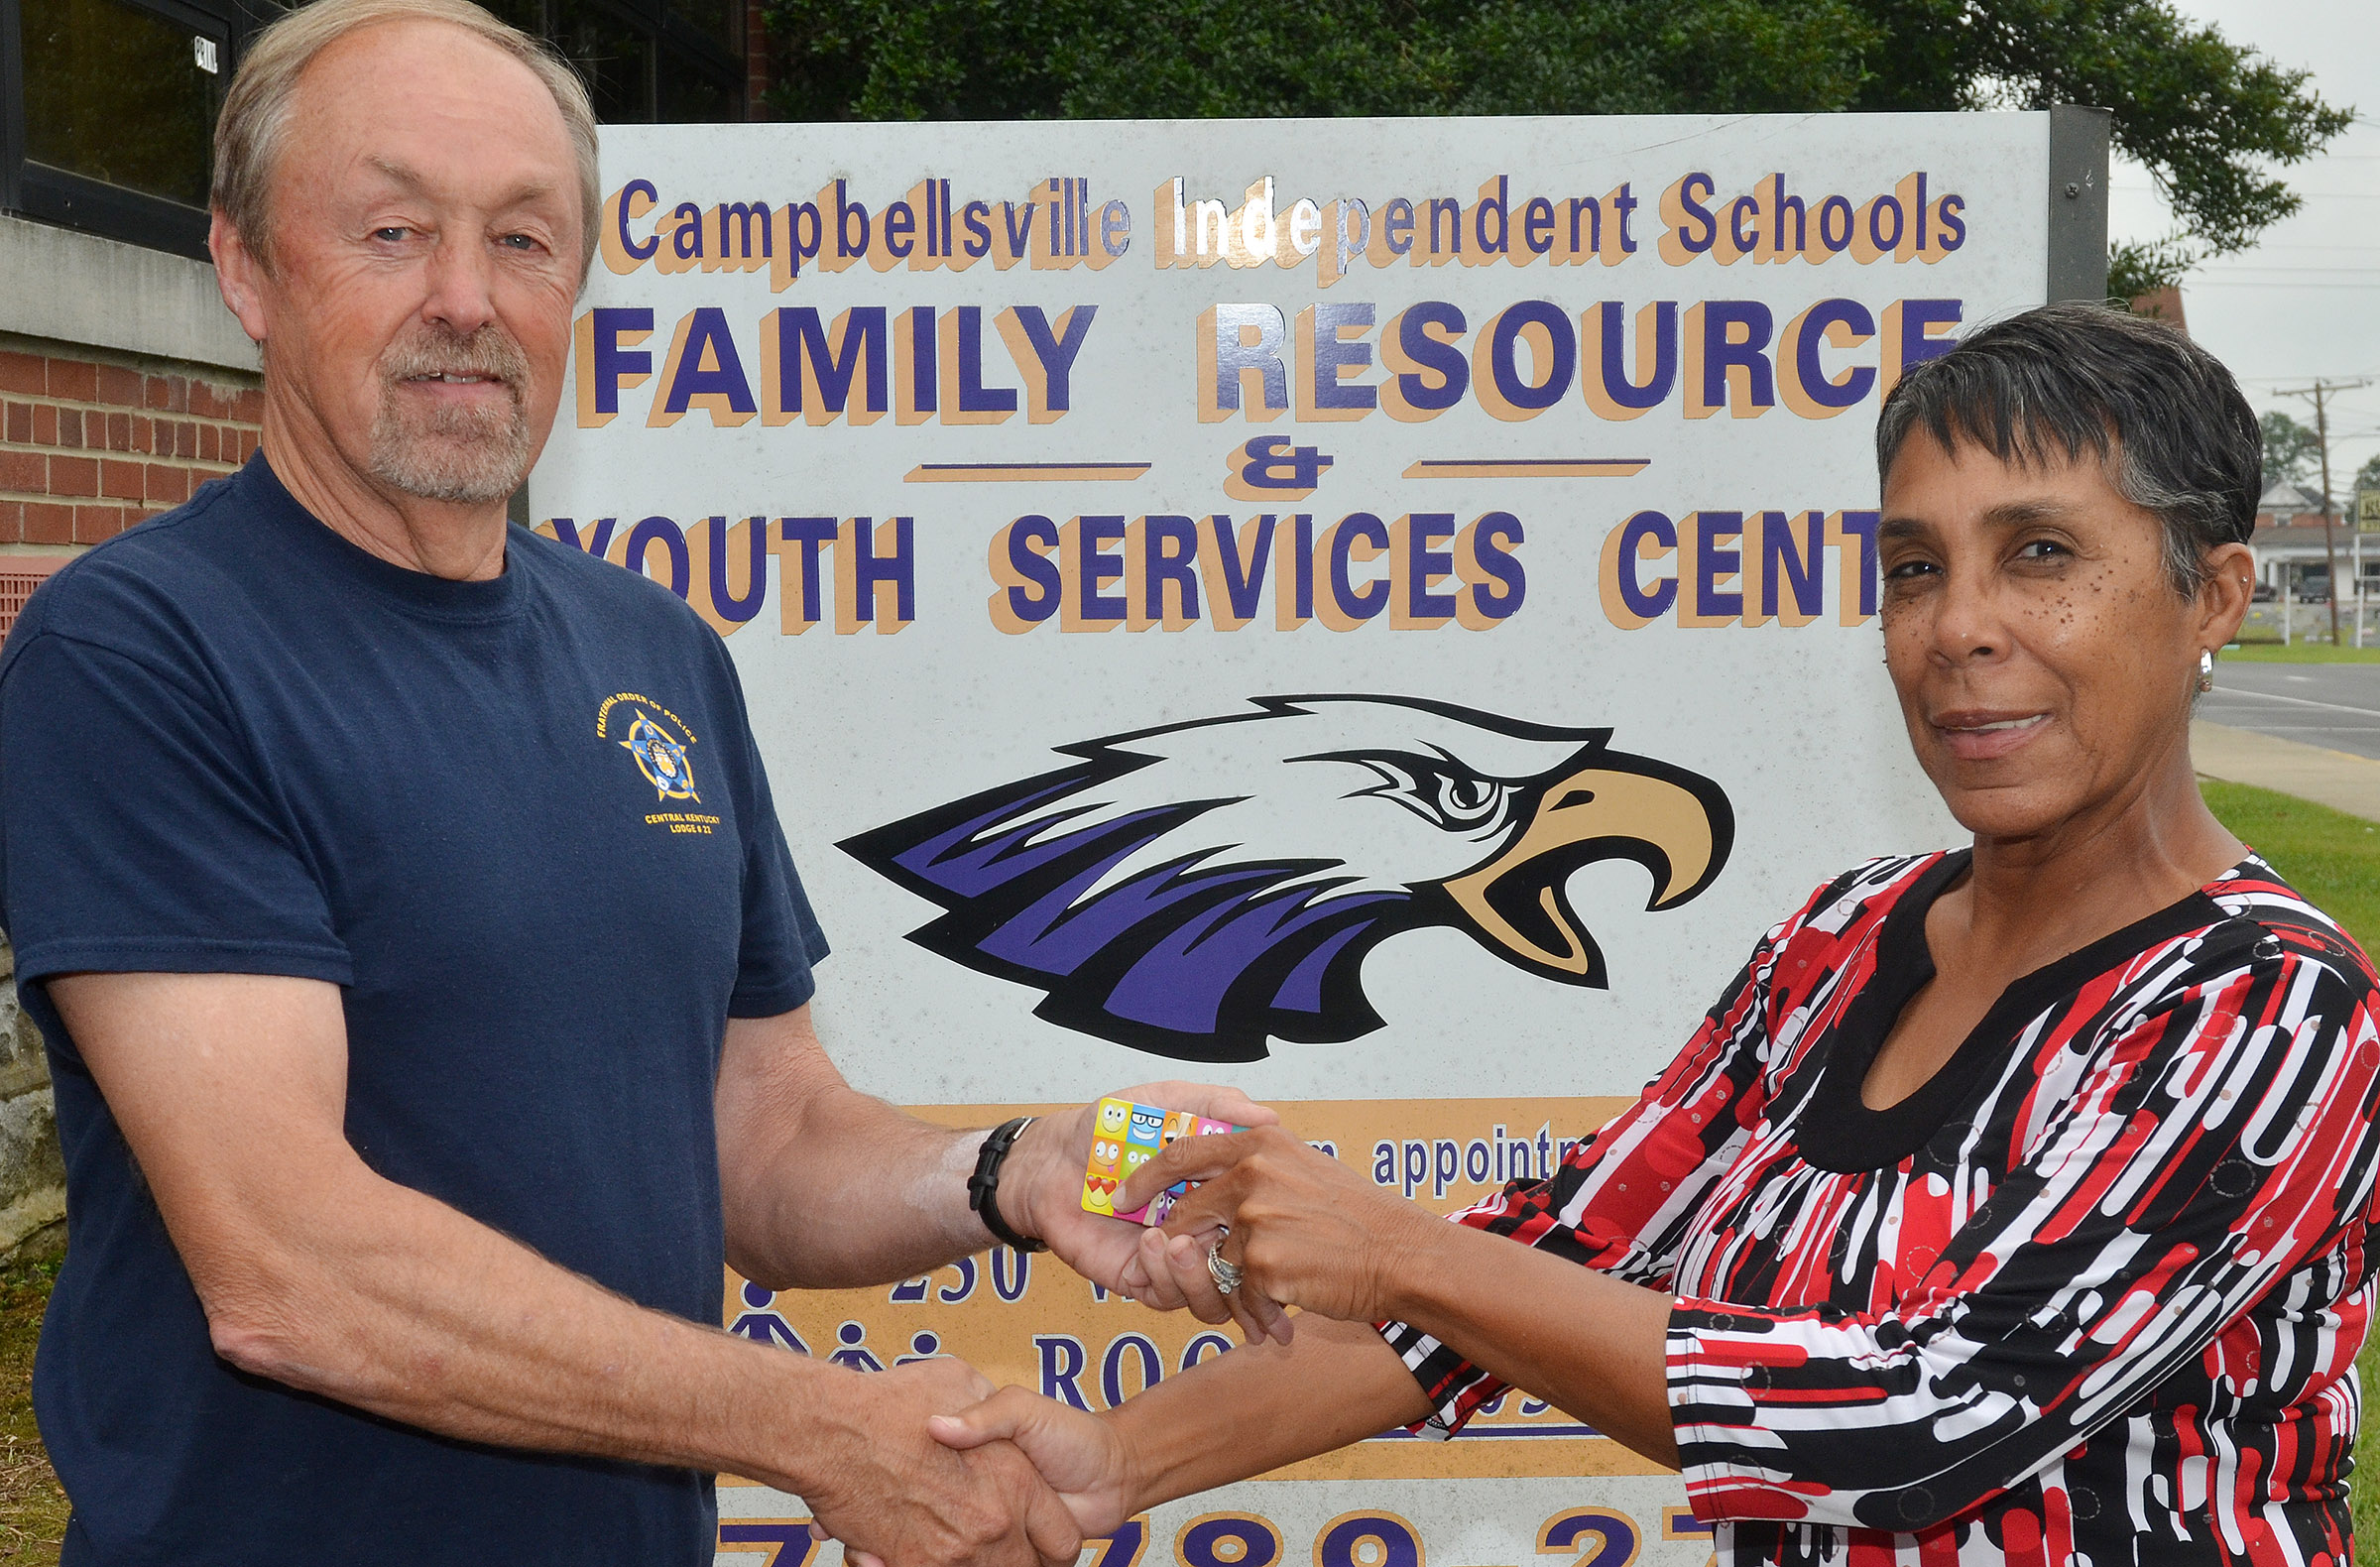 Central Kentucky Fraternal Order of Police Lodge #22 recently donated $1,500 to Campbellsville Family Resource and Youth Services Center, to benefit Campbellsville Independent Schools' students. FOP President Rick Benningfield, at left, made the donation to FRYSC assistant Sharon Hoskins Sanders.